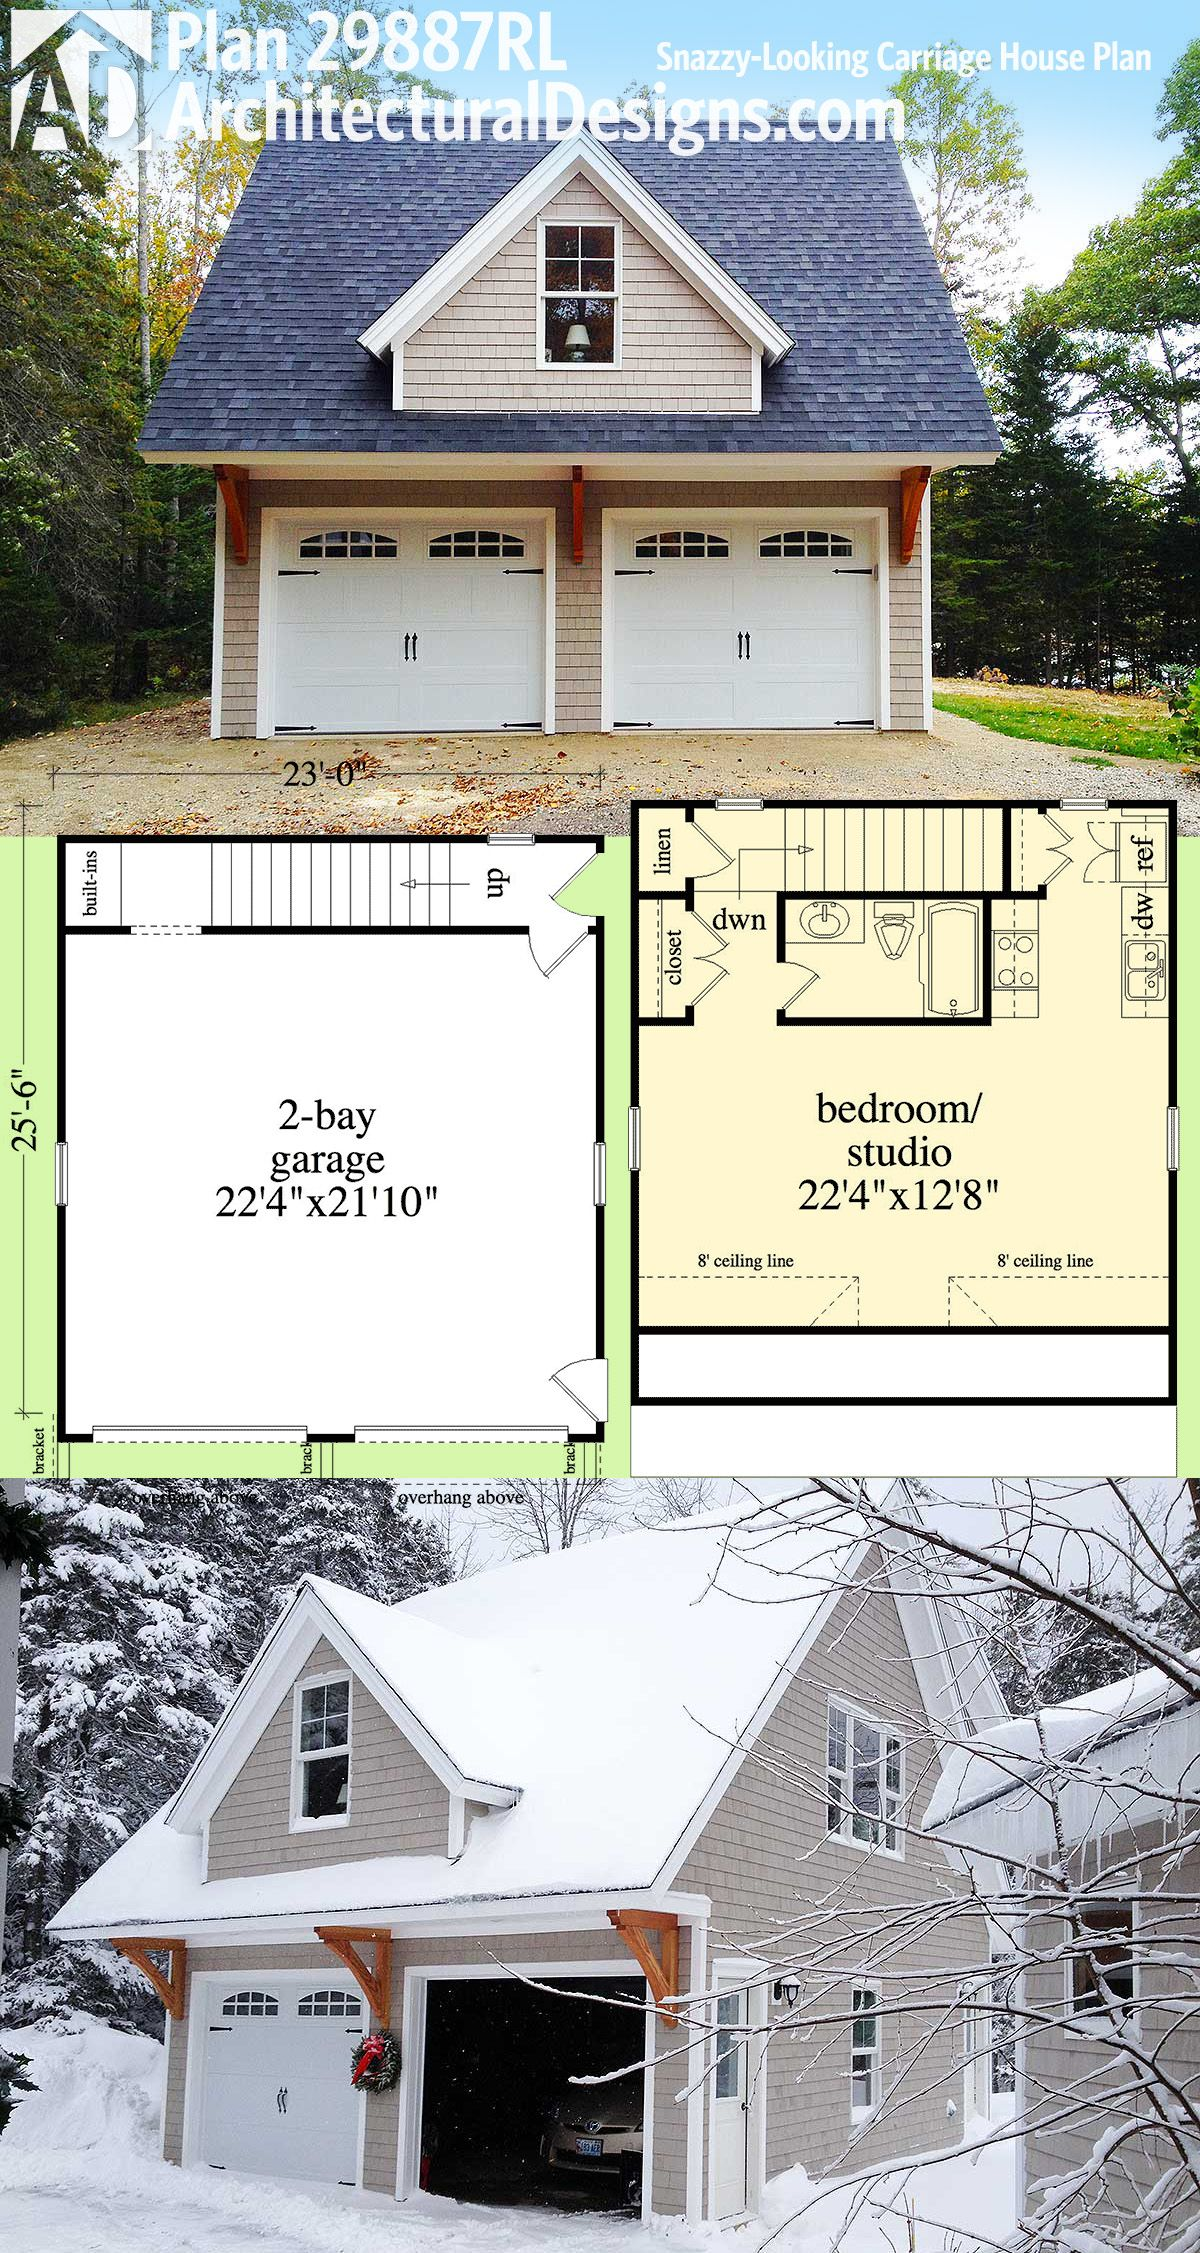 Plan 29887rl snazzy looking carriage house plan for Building a detached garage on a slope